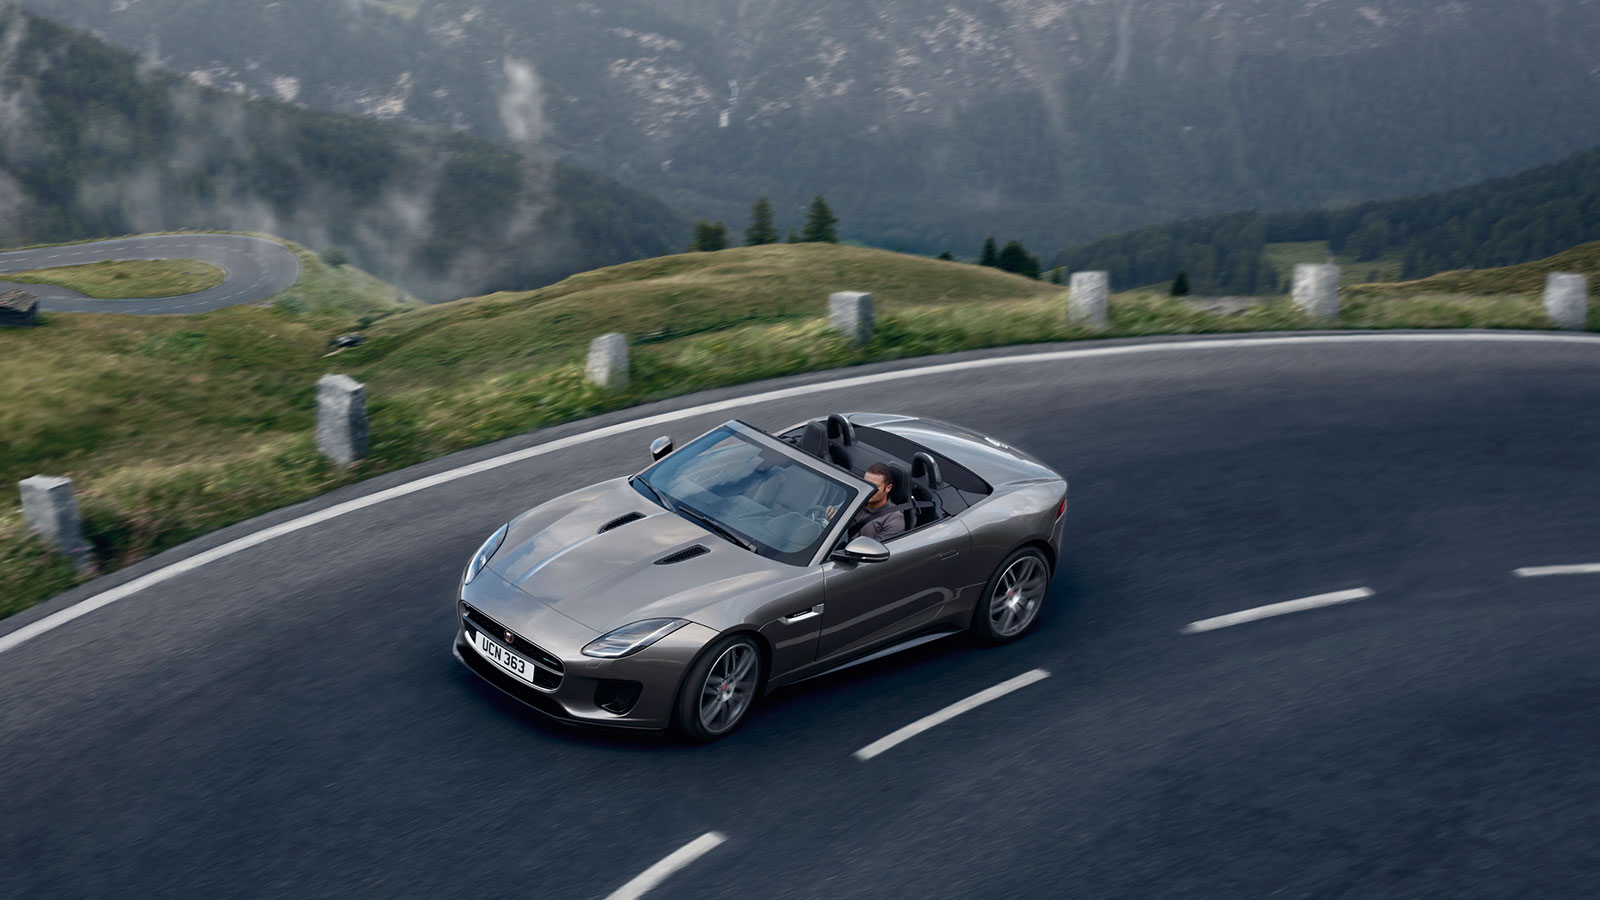 Jaguar F-TYPE driving on a dark country road.